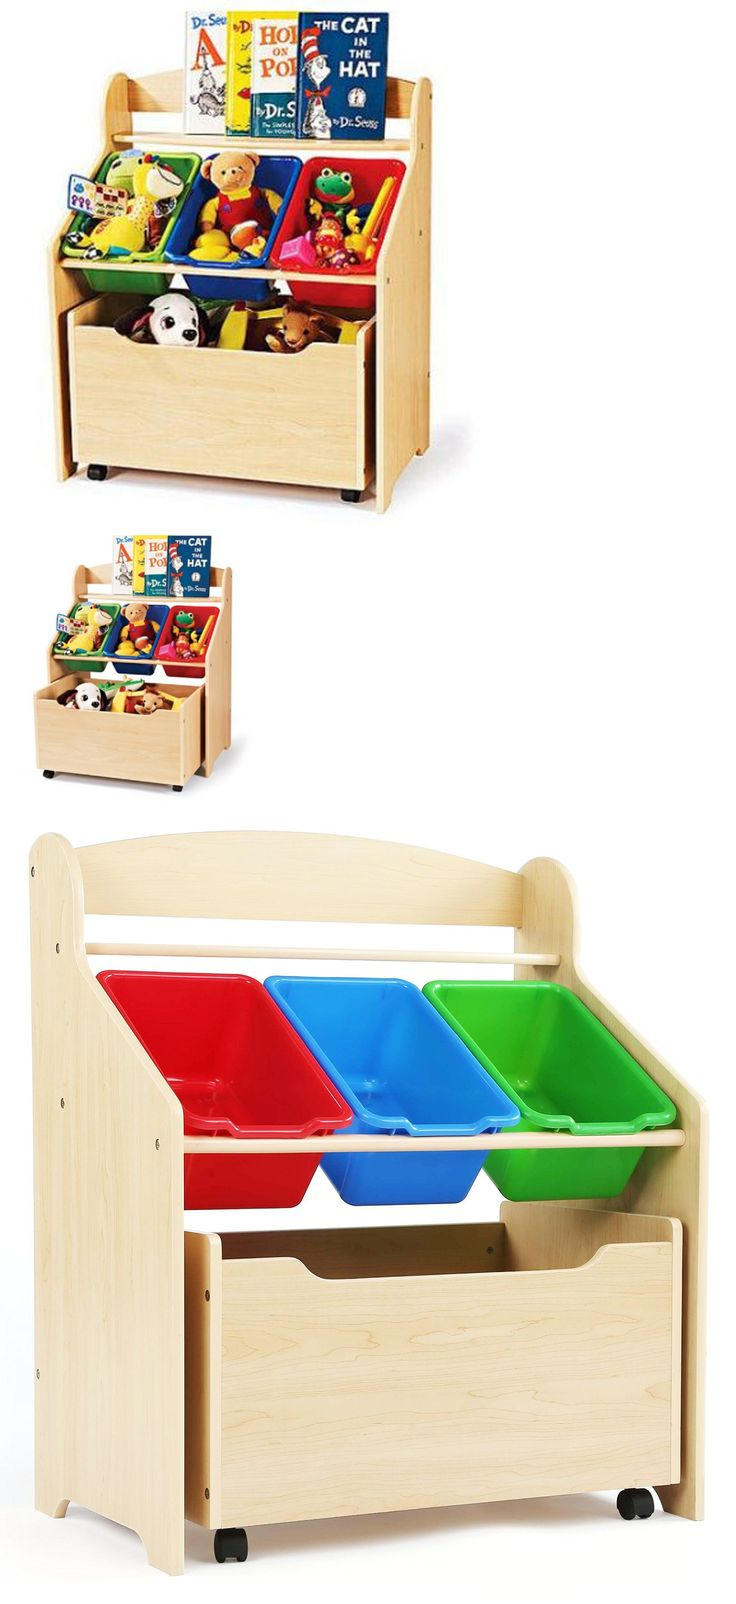 Toy Boxes 94932: Wooden Toy Organizer Kids Bedroom Storage With Bookshelf Toys Bins Wood New -> BUY IT NOW ONLY: $64.87 on eBay!